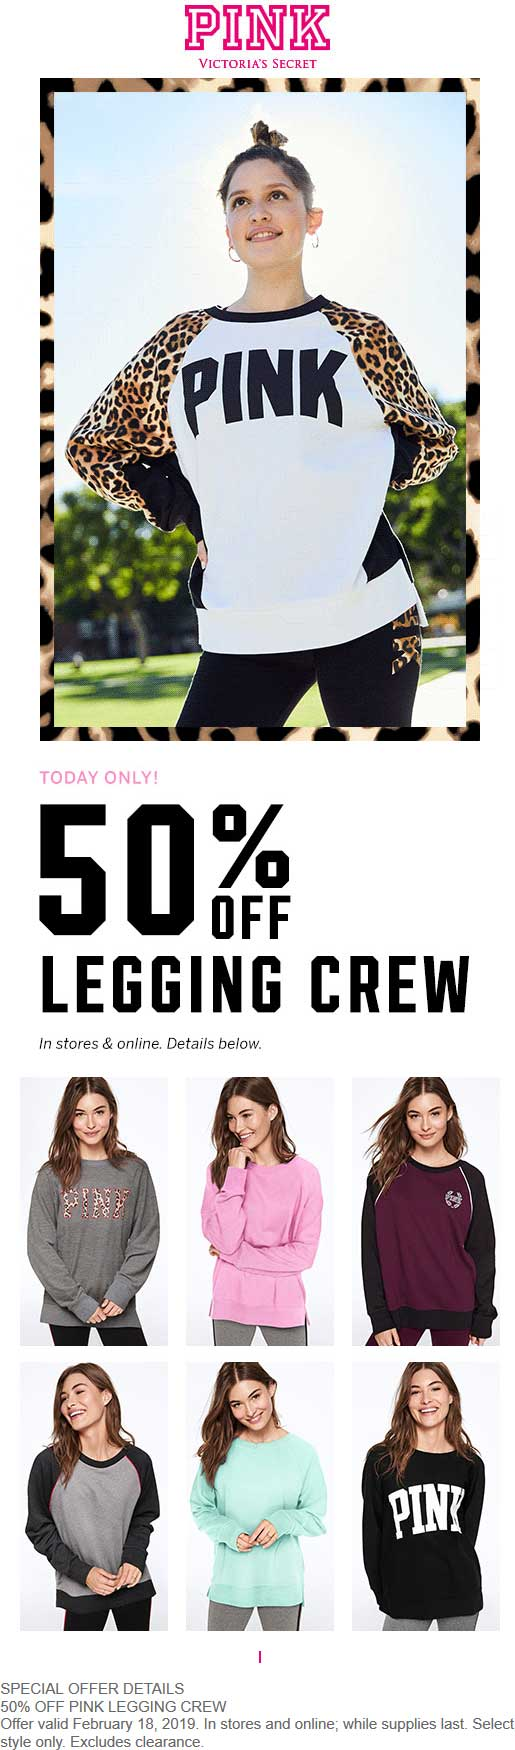 PINK Coupon September 2019 50% off legging crew today at Victorias Secret PINK, ditto online